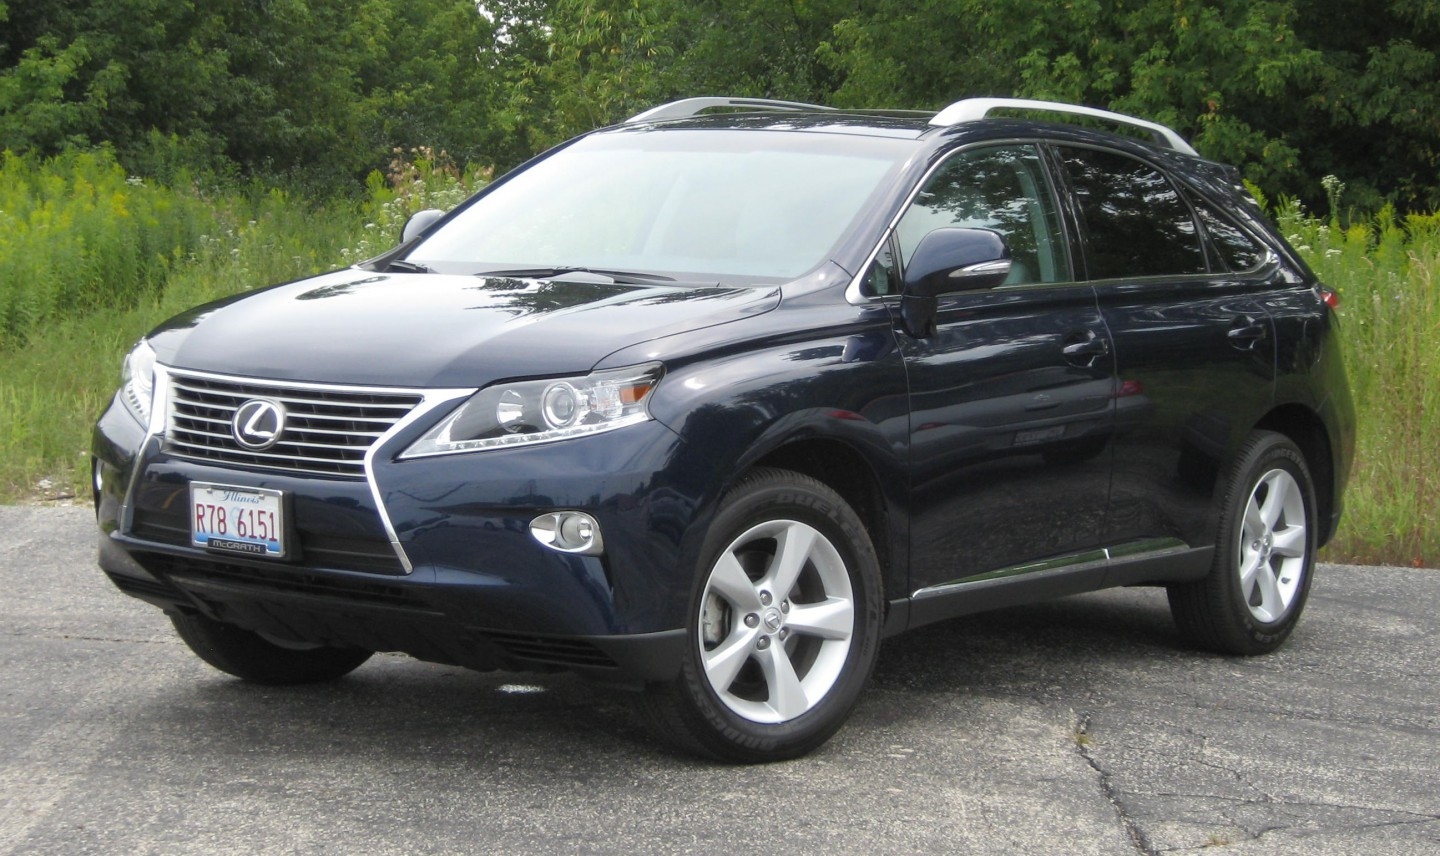 Test Drive: 2013 Lexus RX 350 - The Daily Drive | Consumer Guide ...